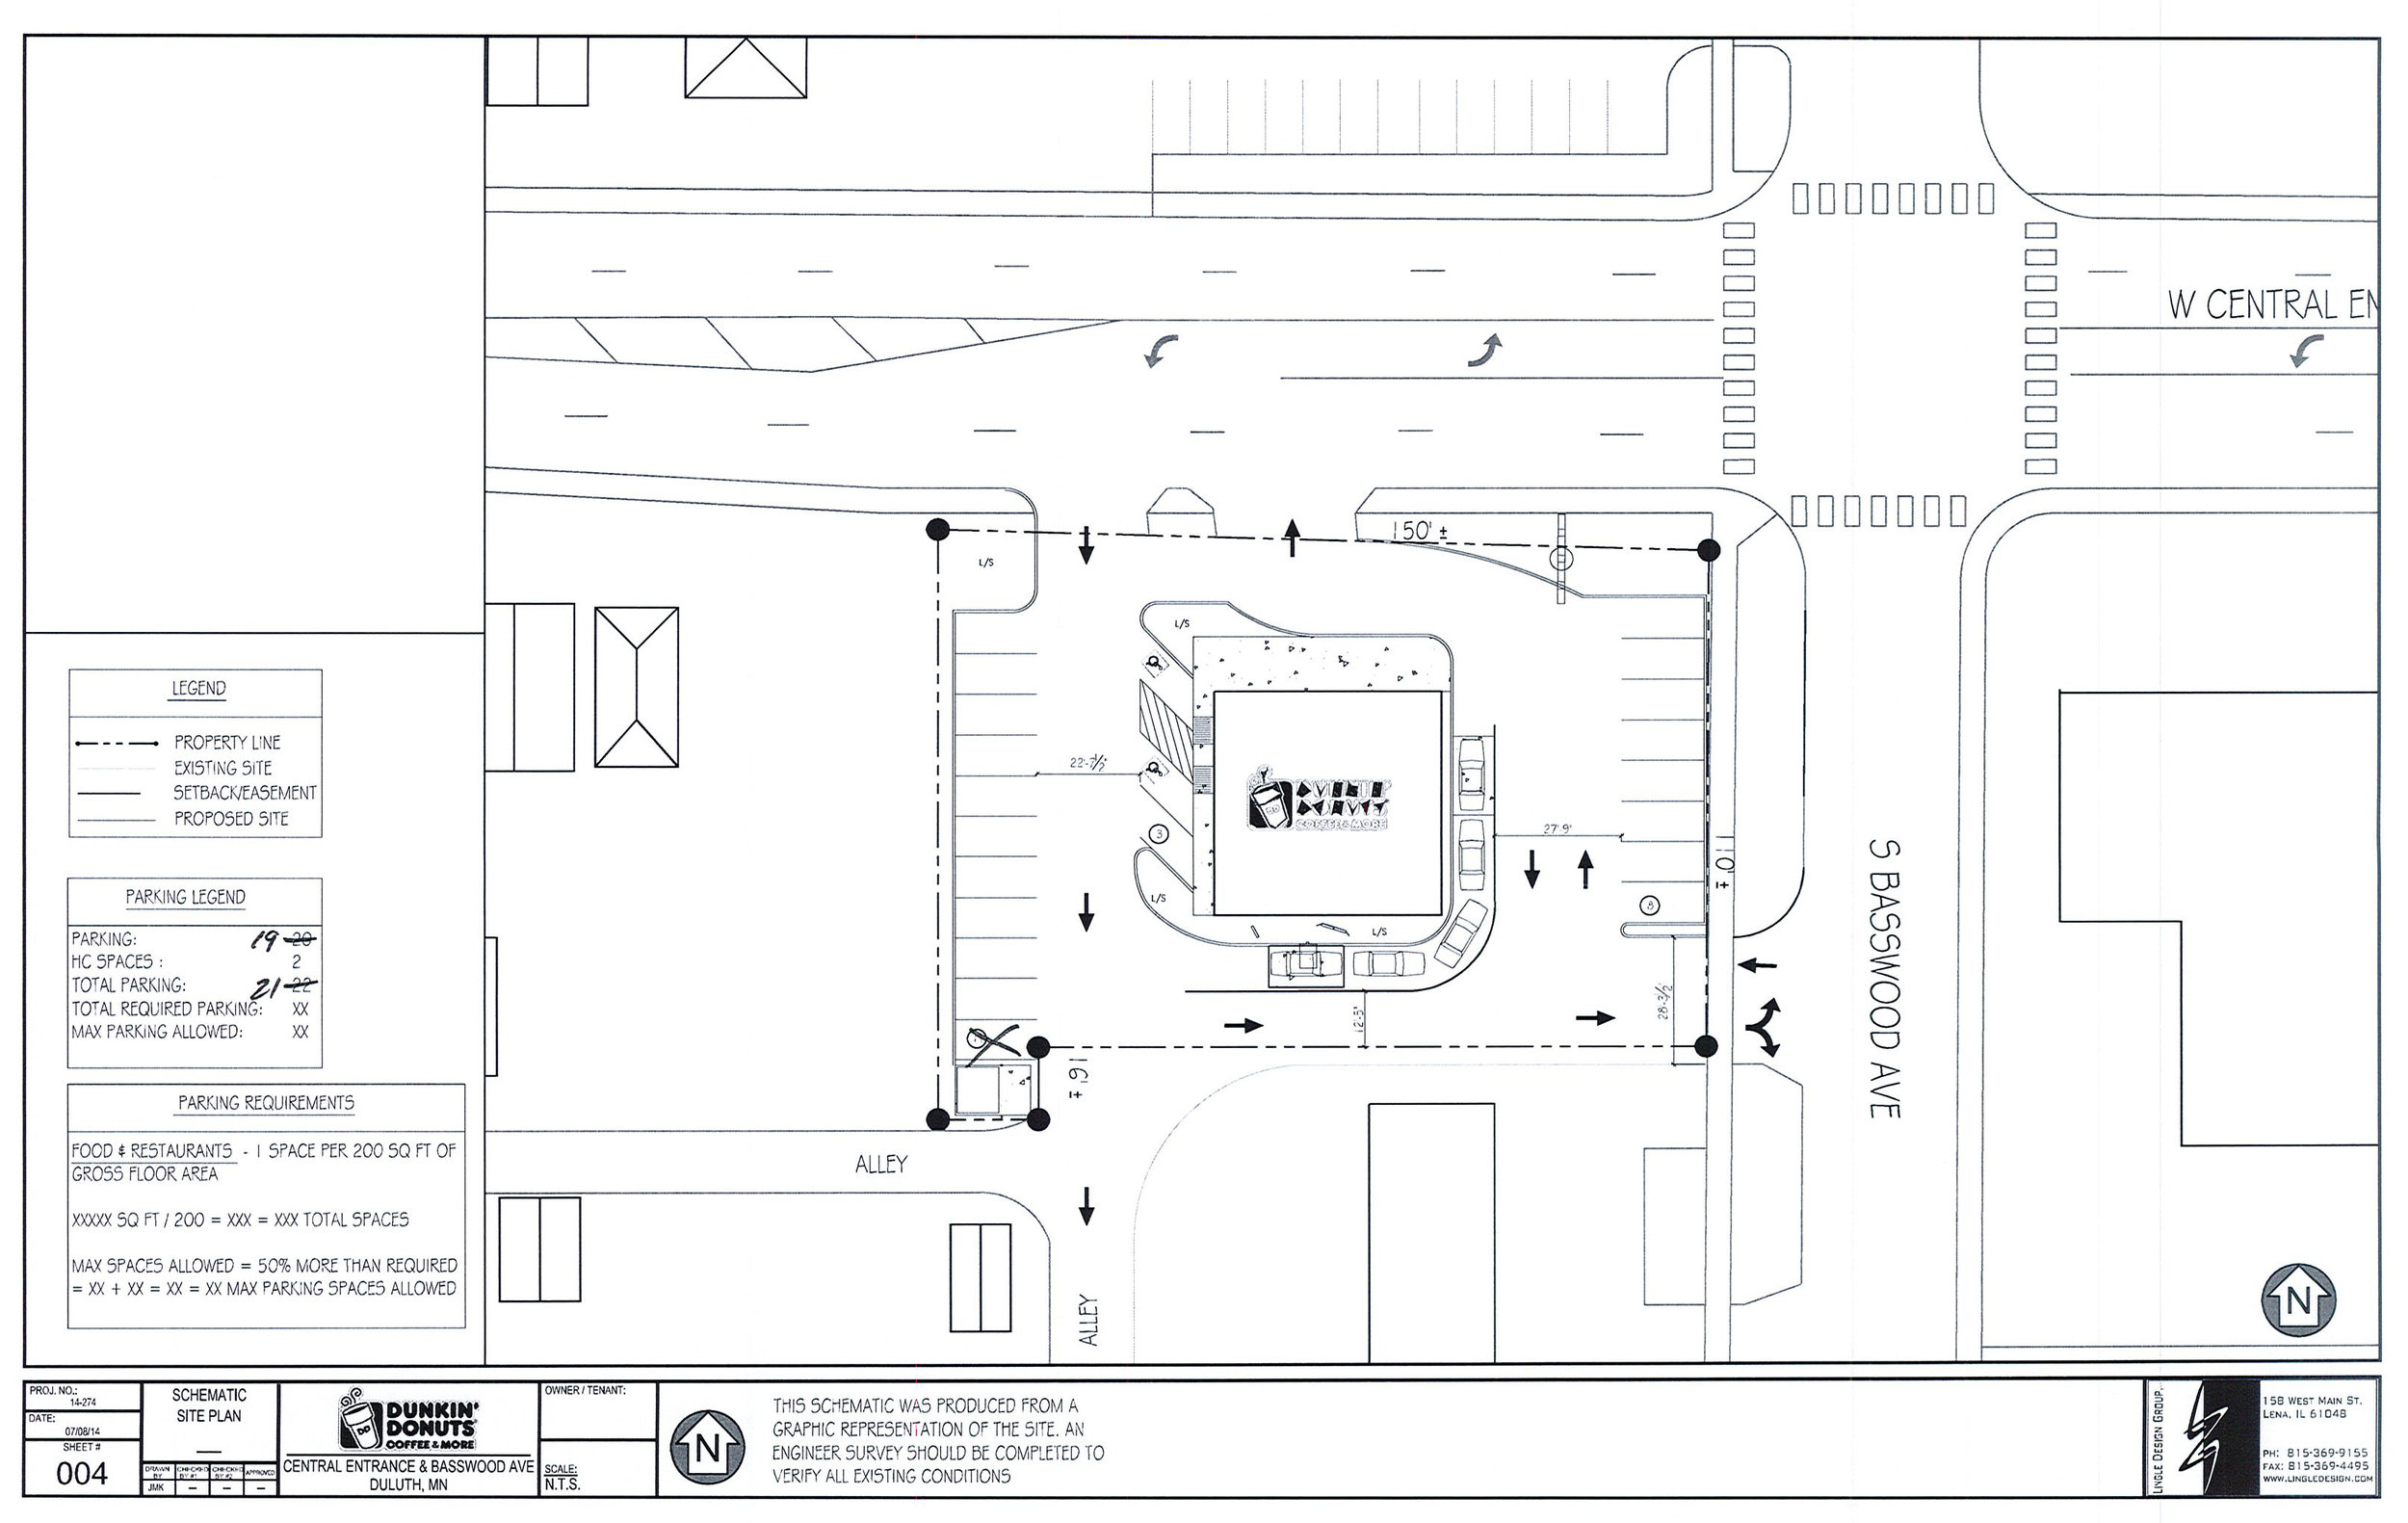 Above:  Site plan showing the exact location of the planned Dunkin' Donuts at 104 West Central Entrance  (Image provided by Duluth Planning Commission)